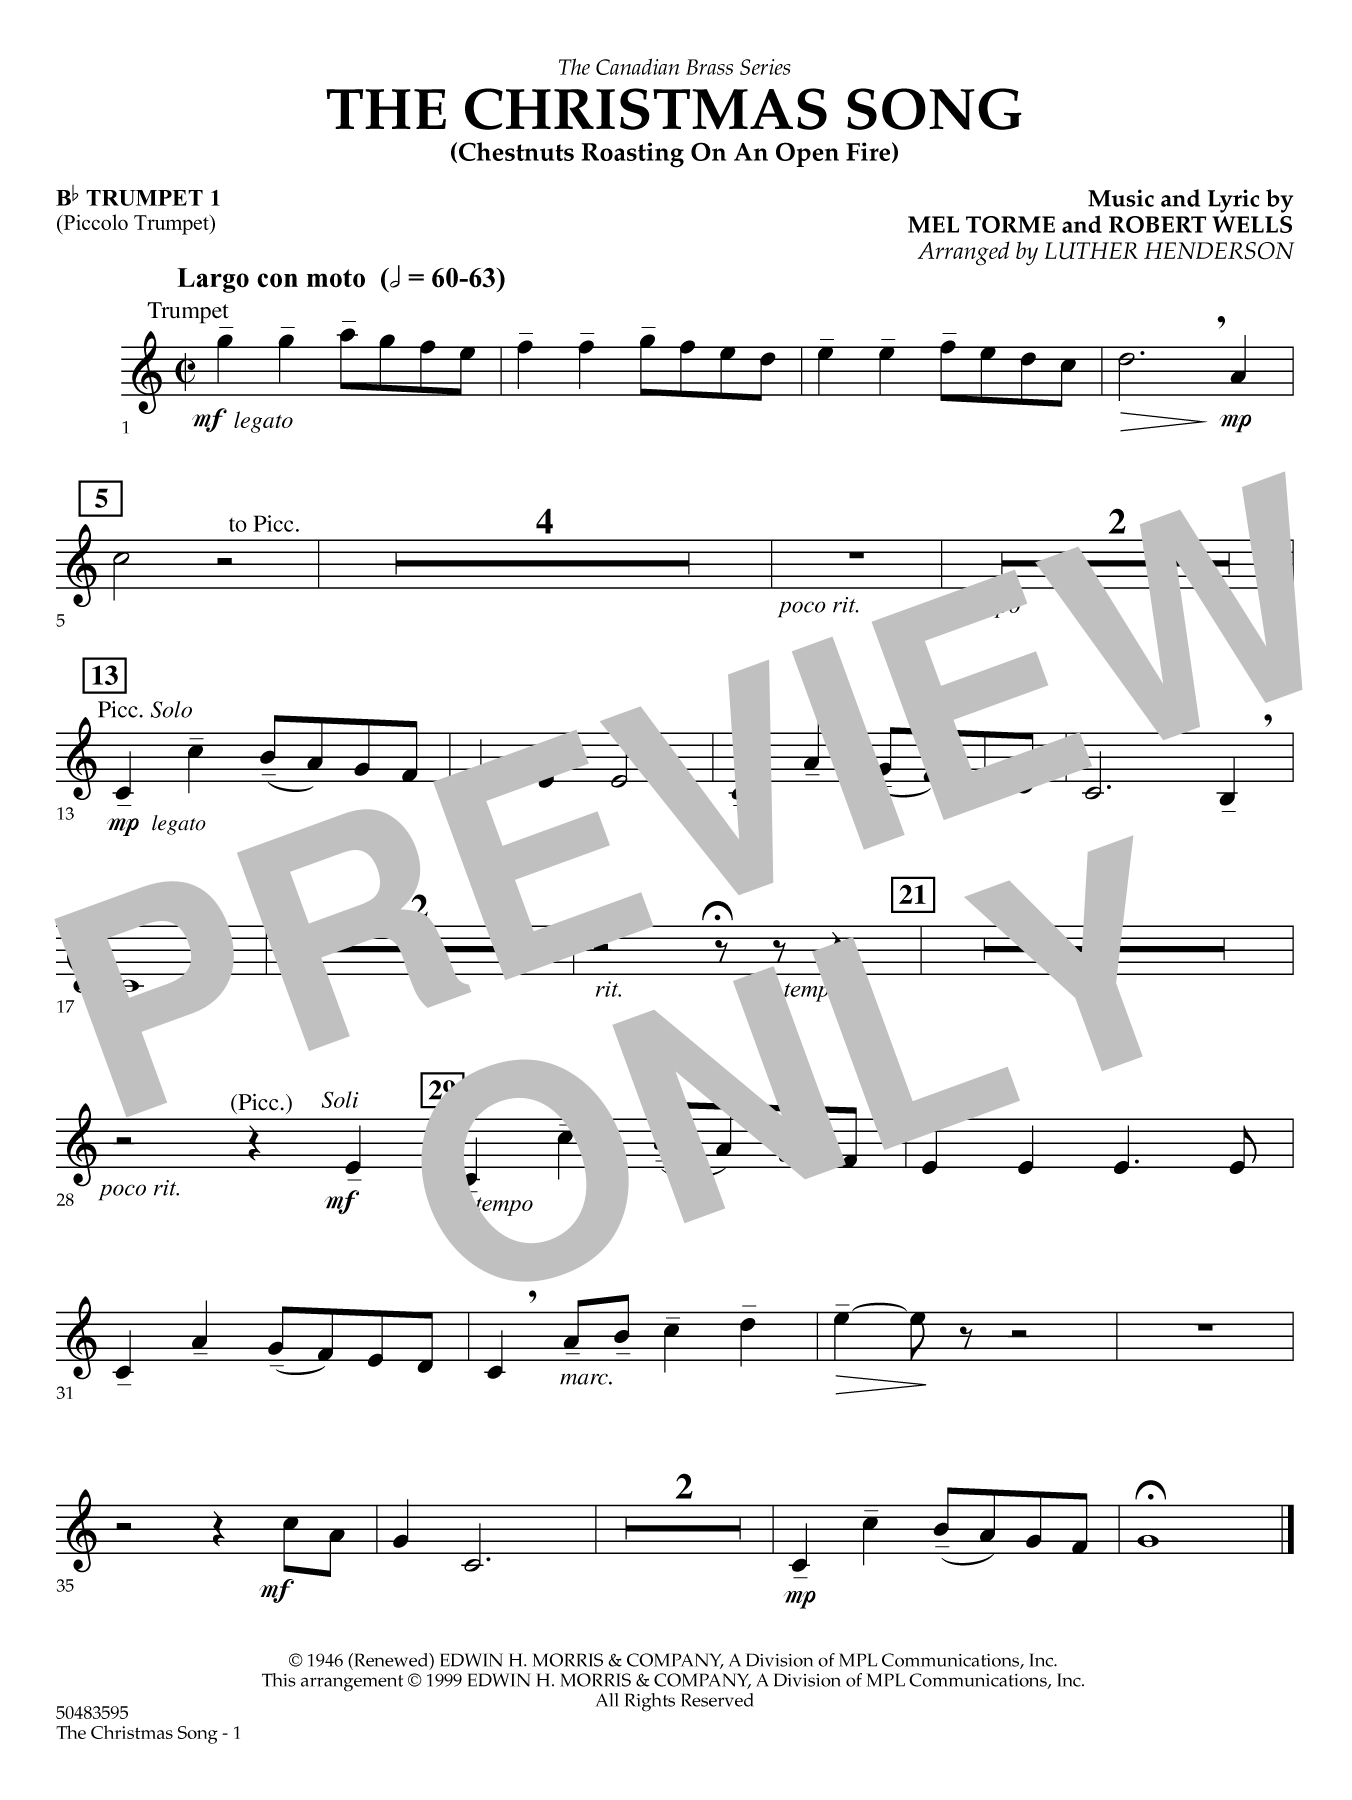 The Christmas Song (Chestnuts Roasting) - Bb Trumpet 1 (Brass Quintet) Sheet Music